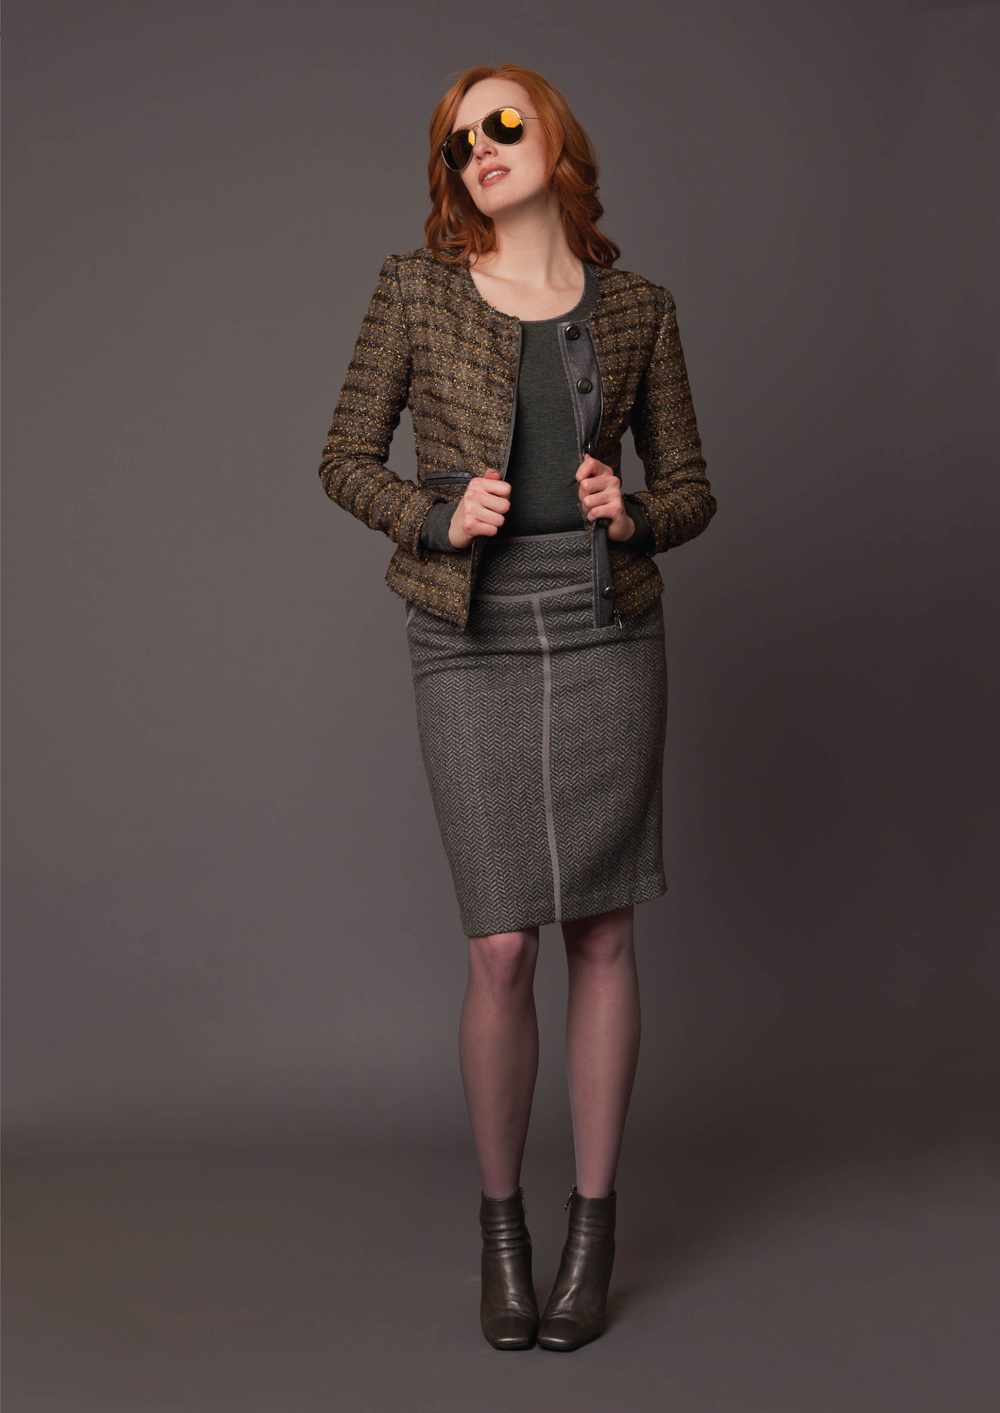 boucle plaid jacket  bronze/pewter   long sleeve modern tee  charcoal   herringbone pattern seamed skirt with suede trim  steel grey